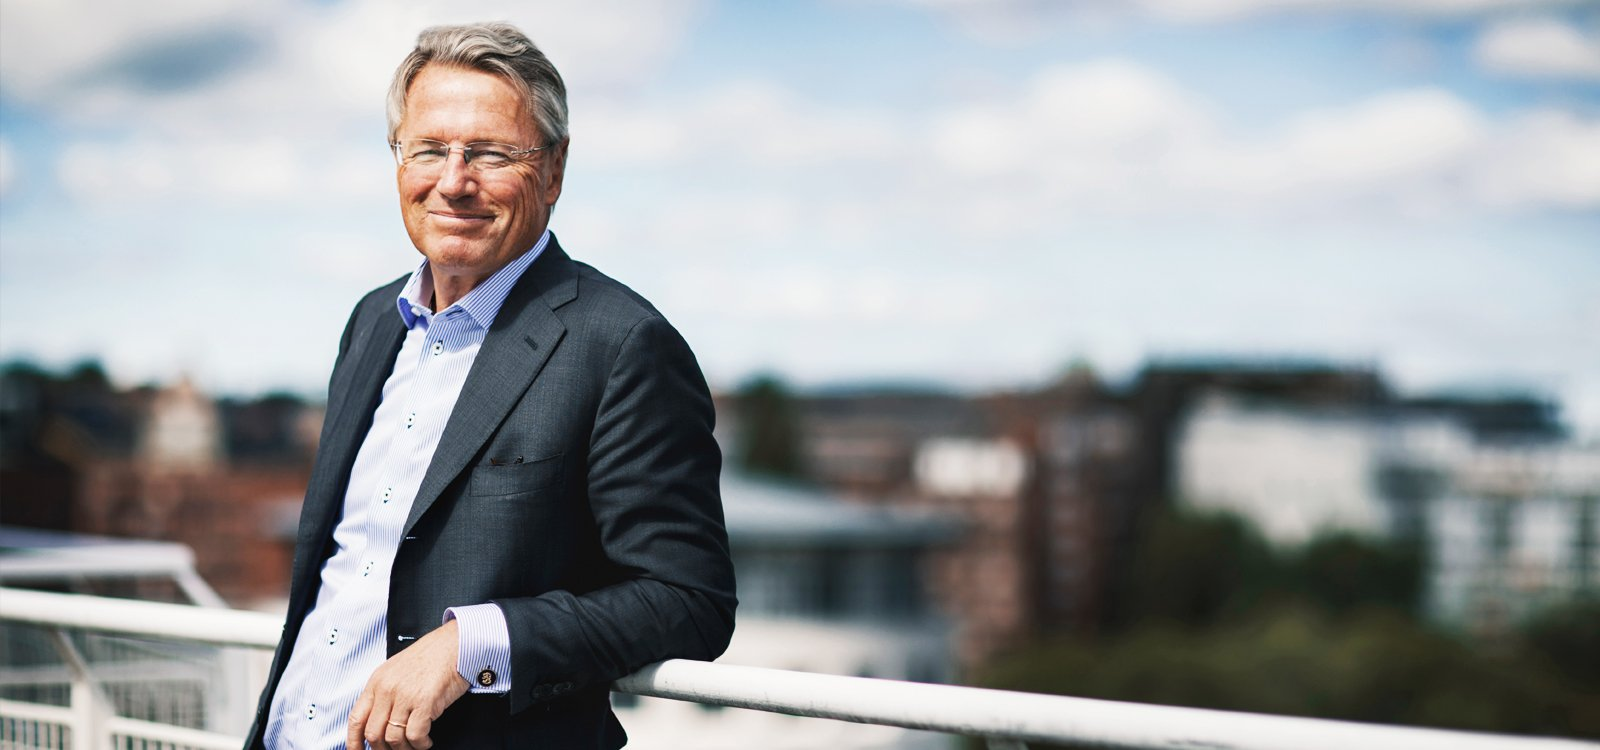 <p>Björn Rosengren, President and CEO of Sandvik Group, talks to Minestories about the mining industry.</p>